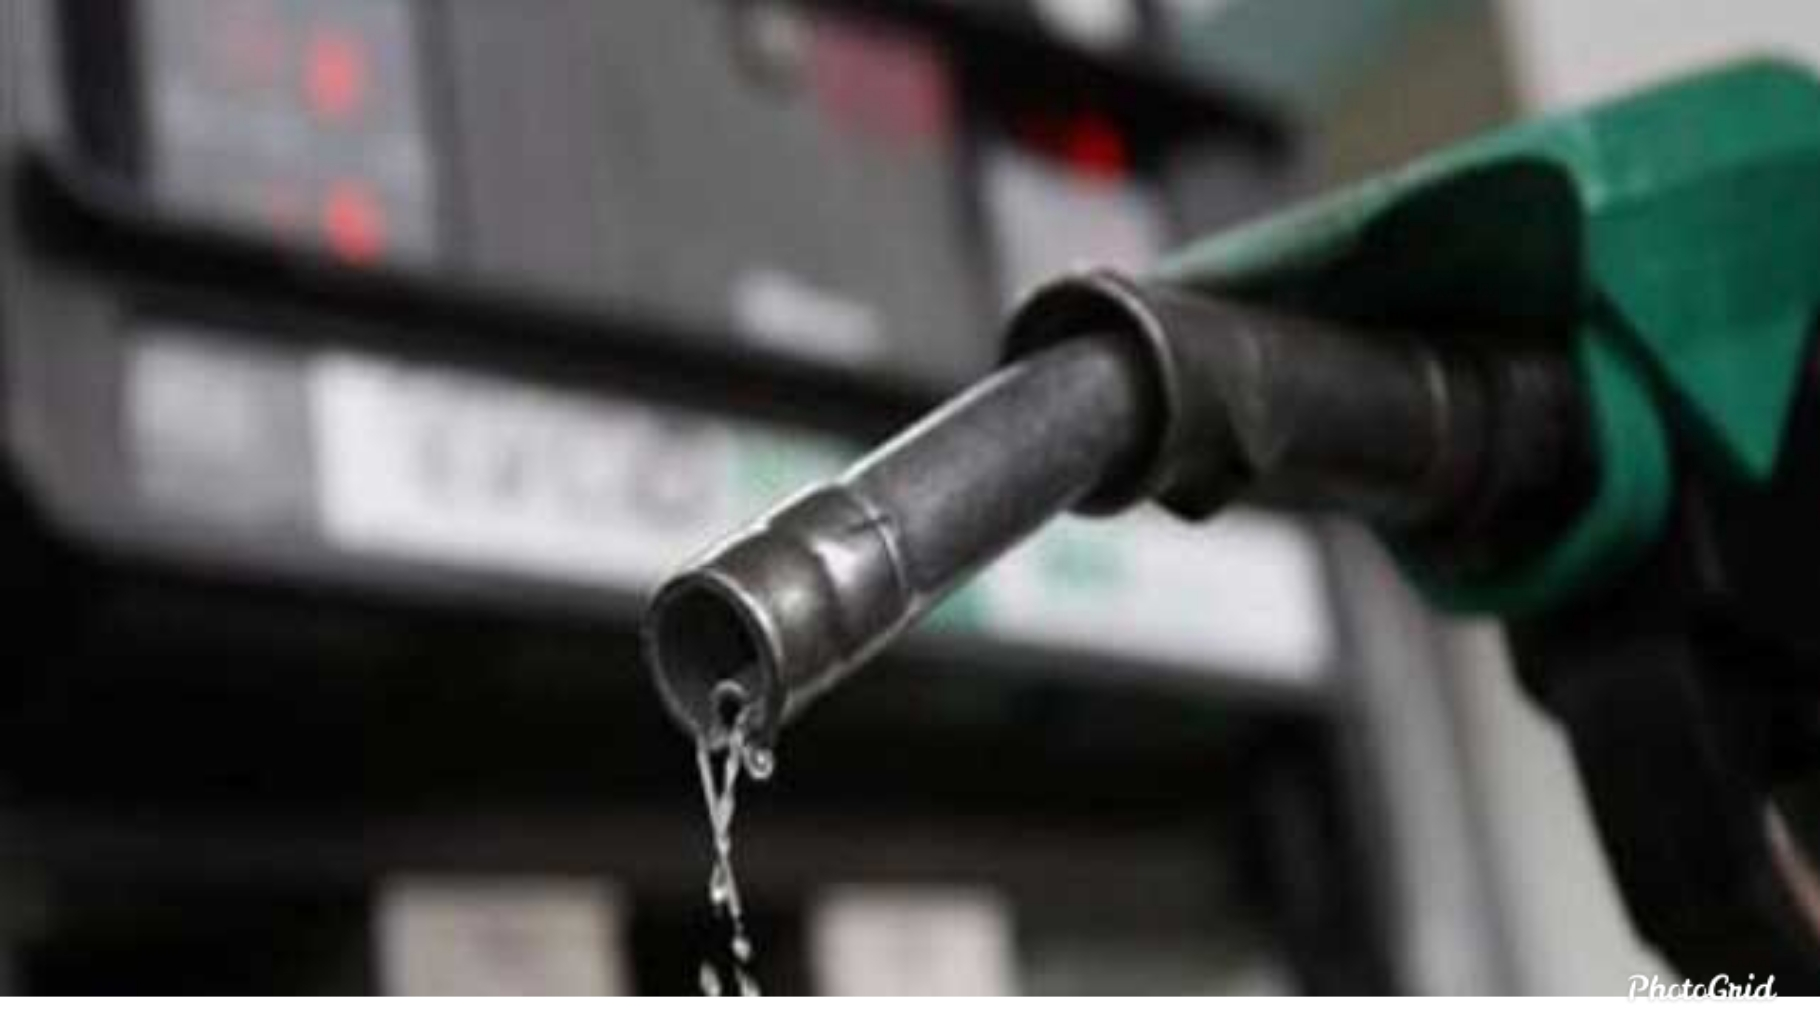 FG reduces fuel price to N123.50 per litre